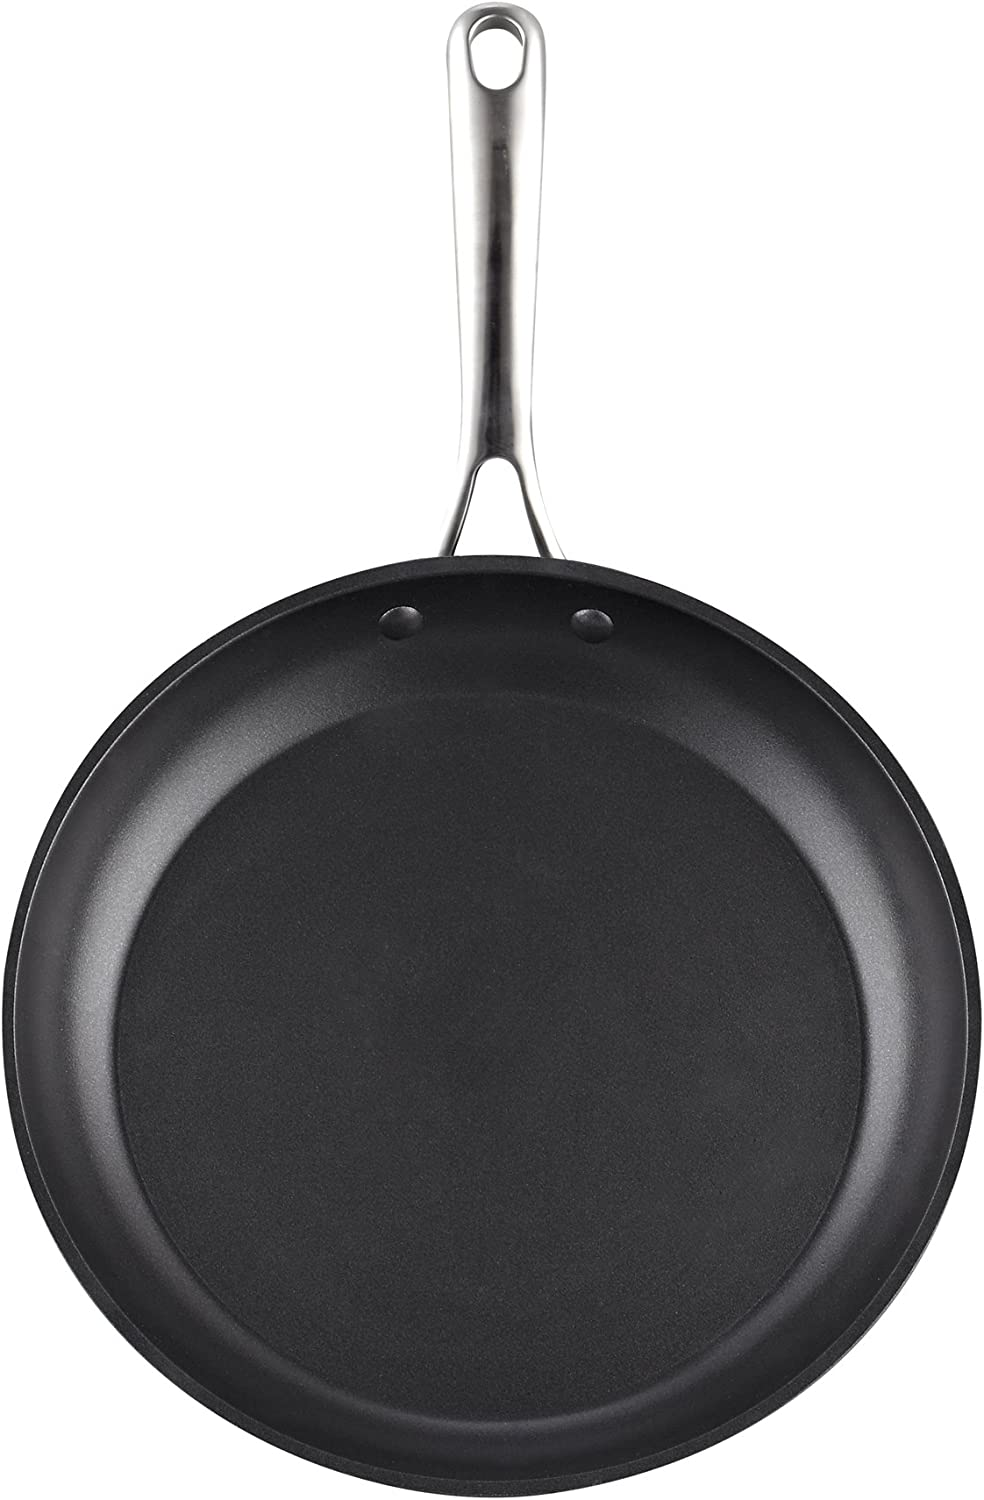 Cooks Standard 02577 12-Inch 30cm Nonstick Hard, Black Anodized Fry Saute Omelet Pan, 12-inch,